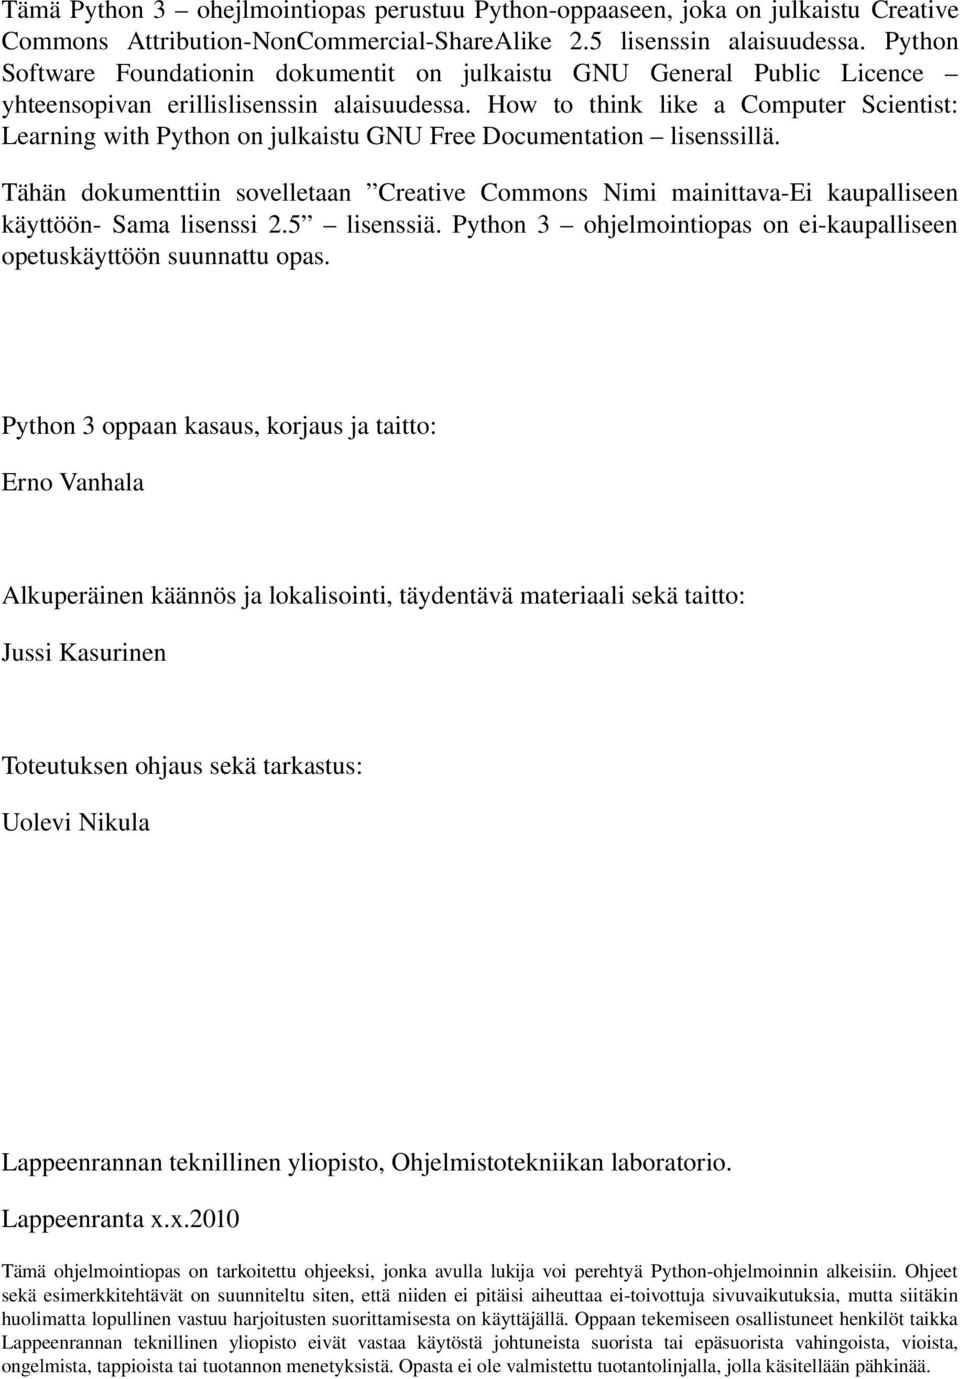 How to think like a Computer Scientist: Learning with Python on julkaistu GNU Free Documentation lisenssillä.